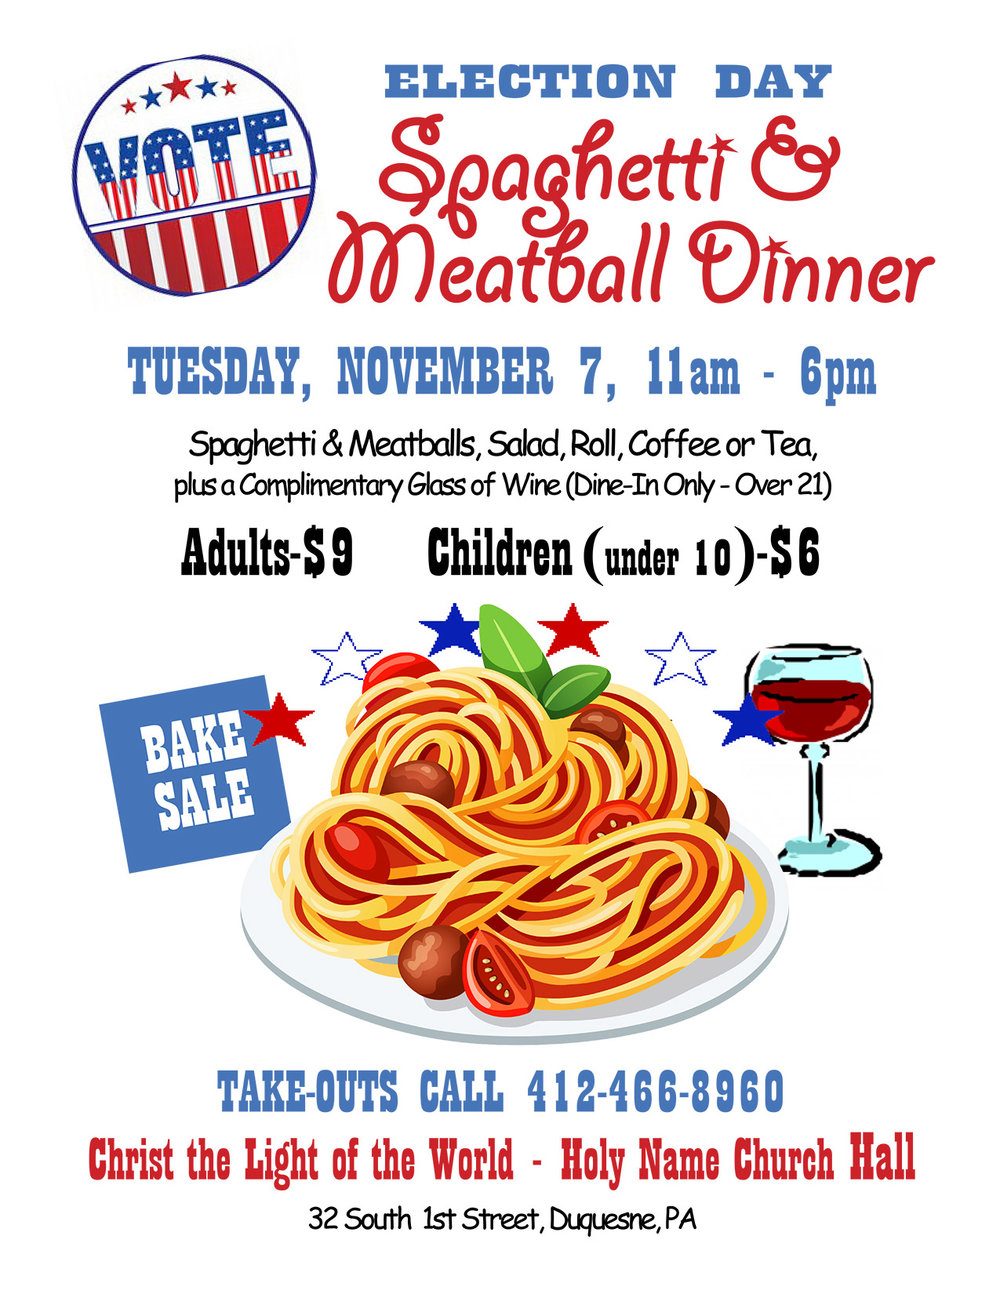 Election Day Spaghetti Dinner.jpg